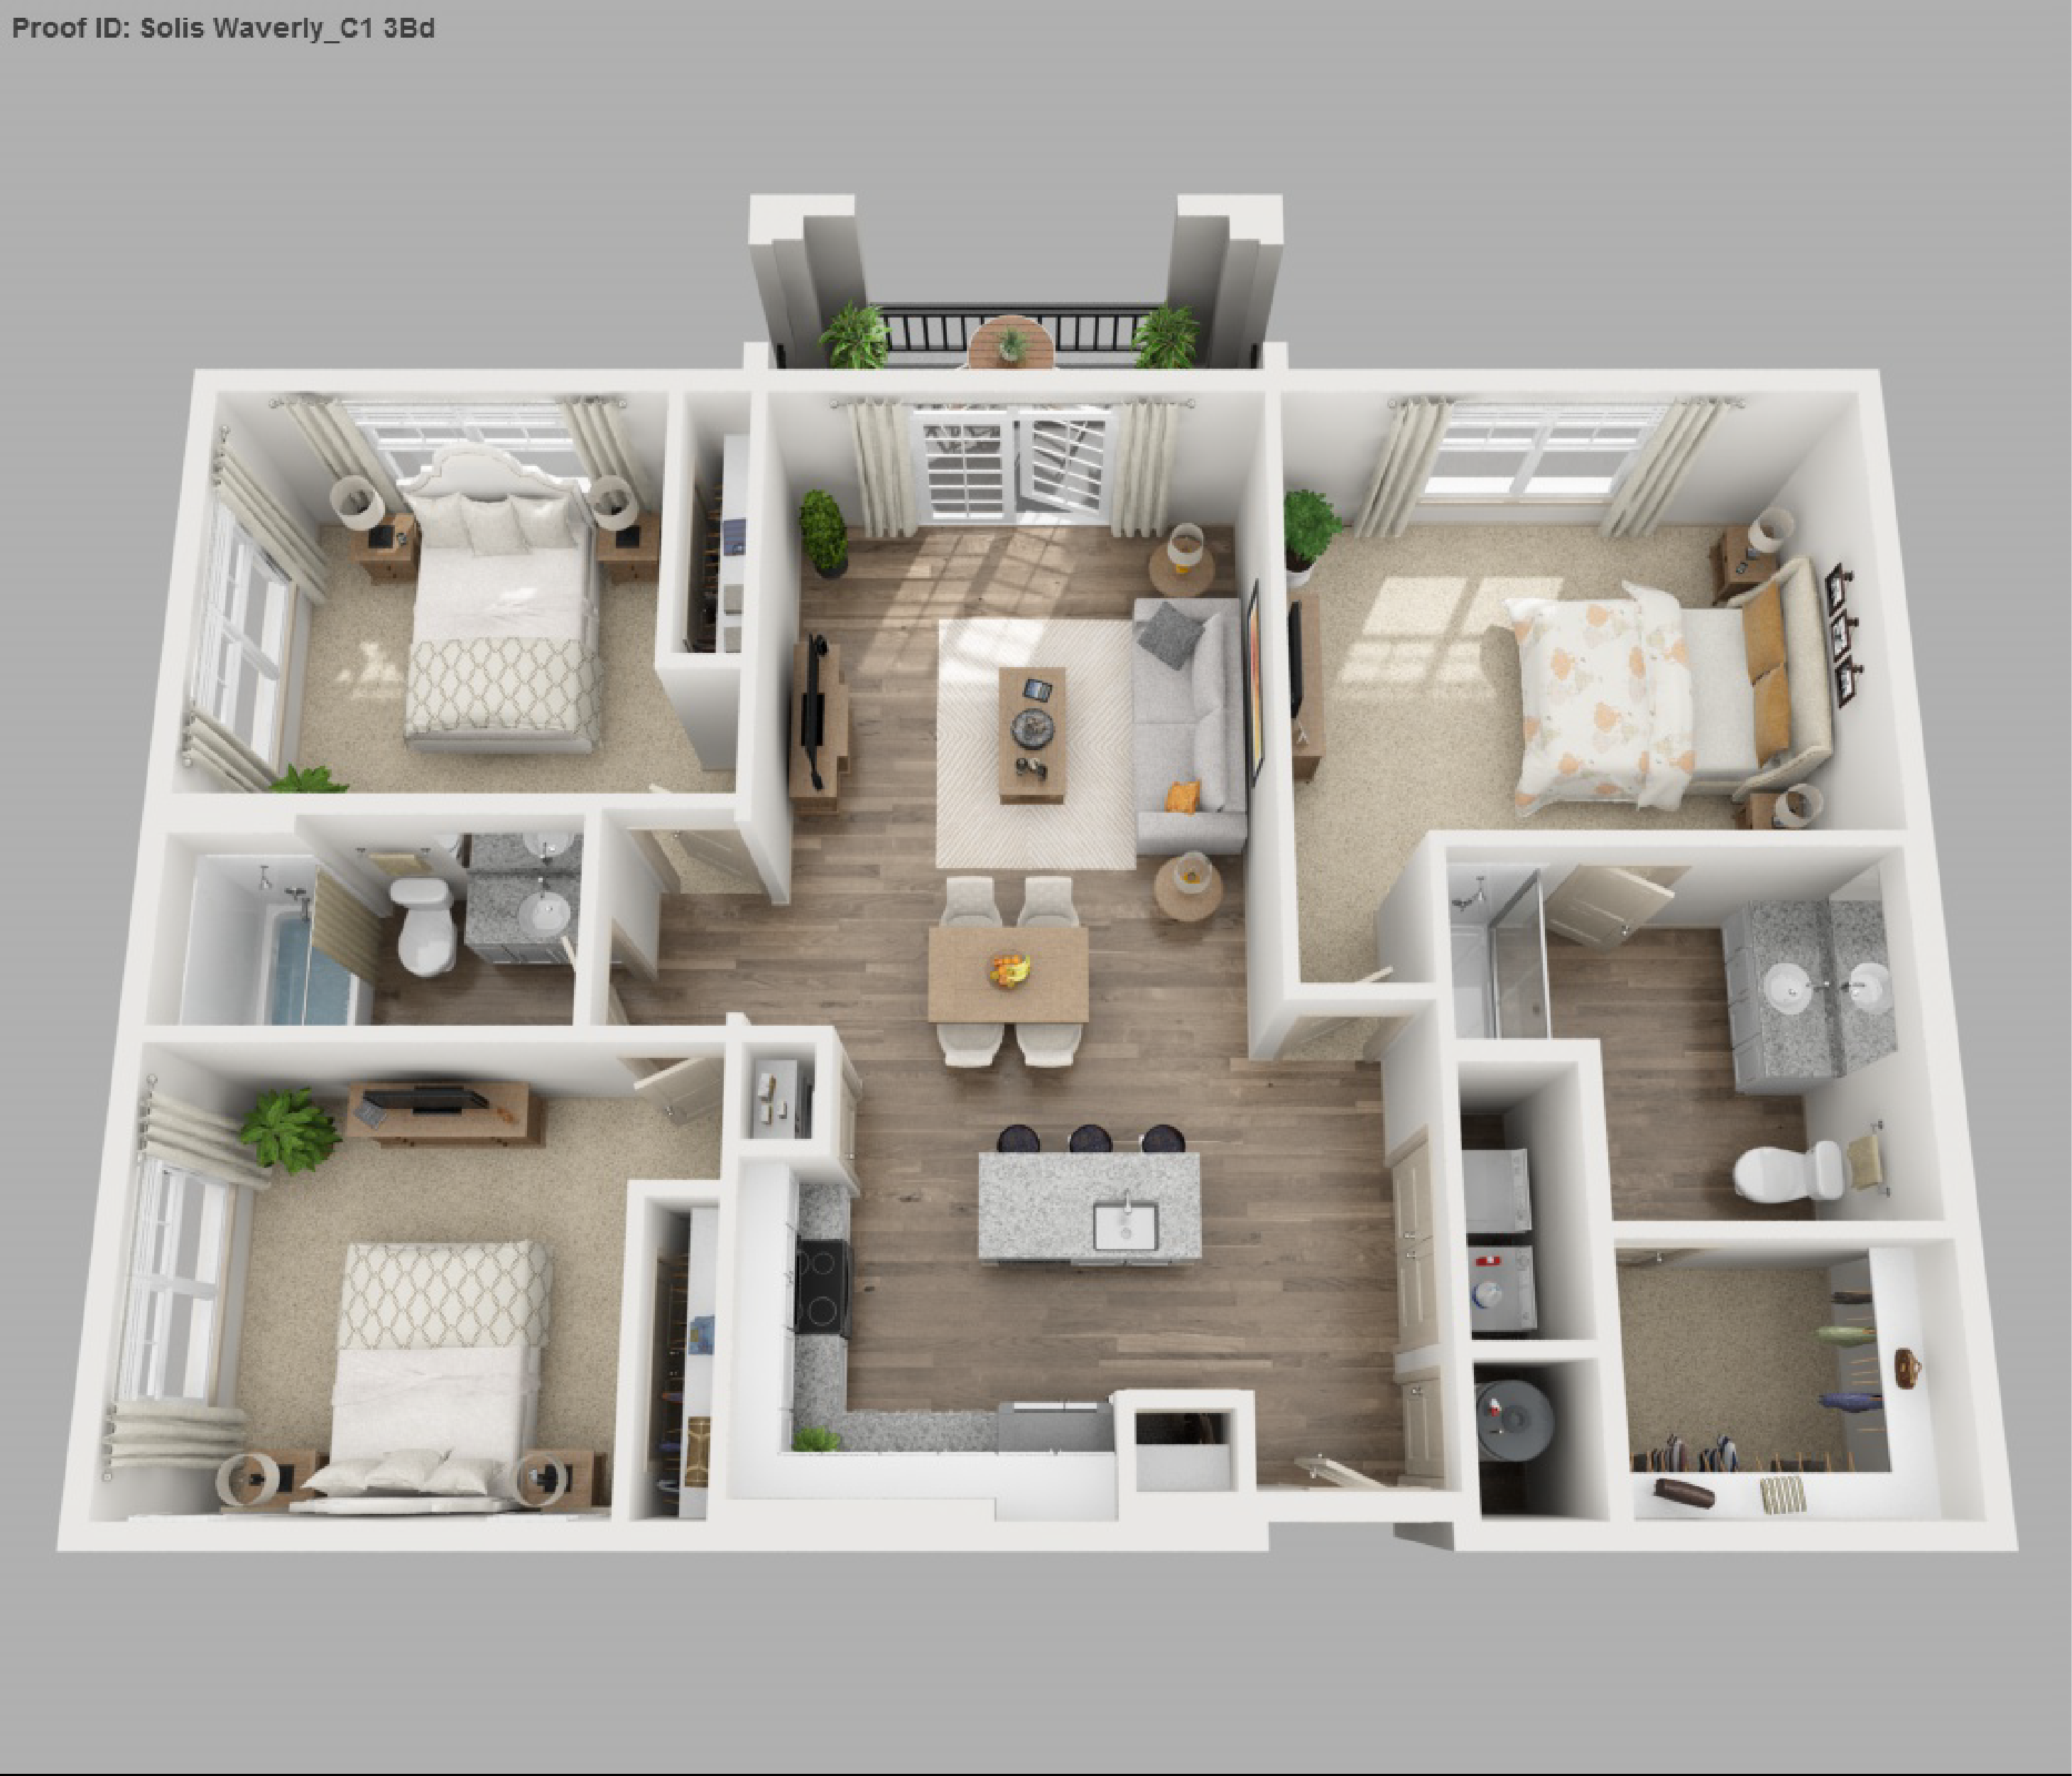 Three Bedroom Apartments Floor Plans solis apartments floorplans - waverly